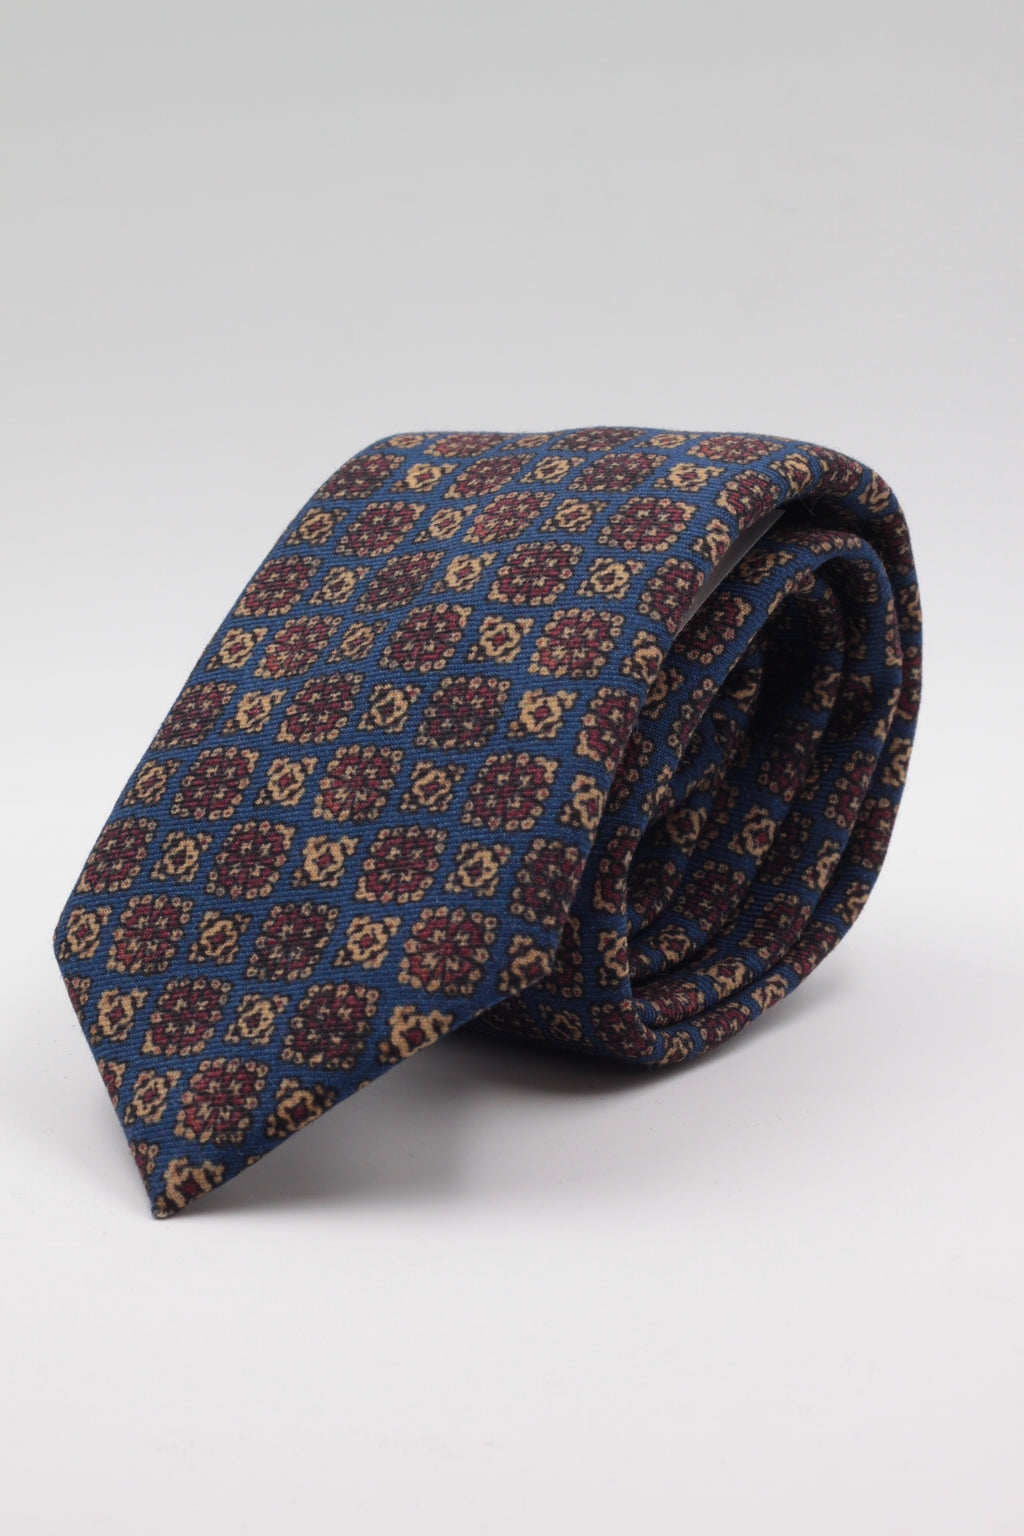 Blue, cream and burgundy print tie